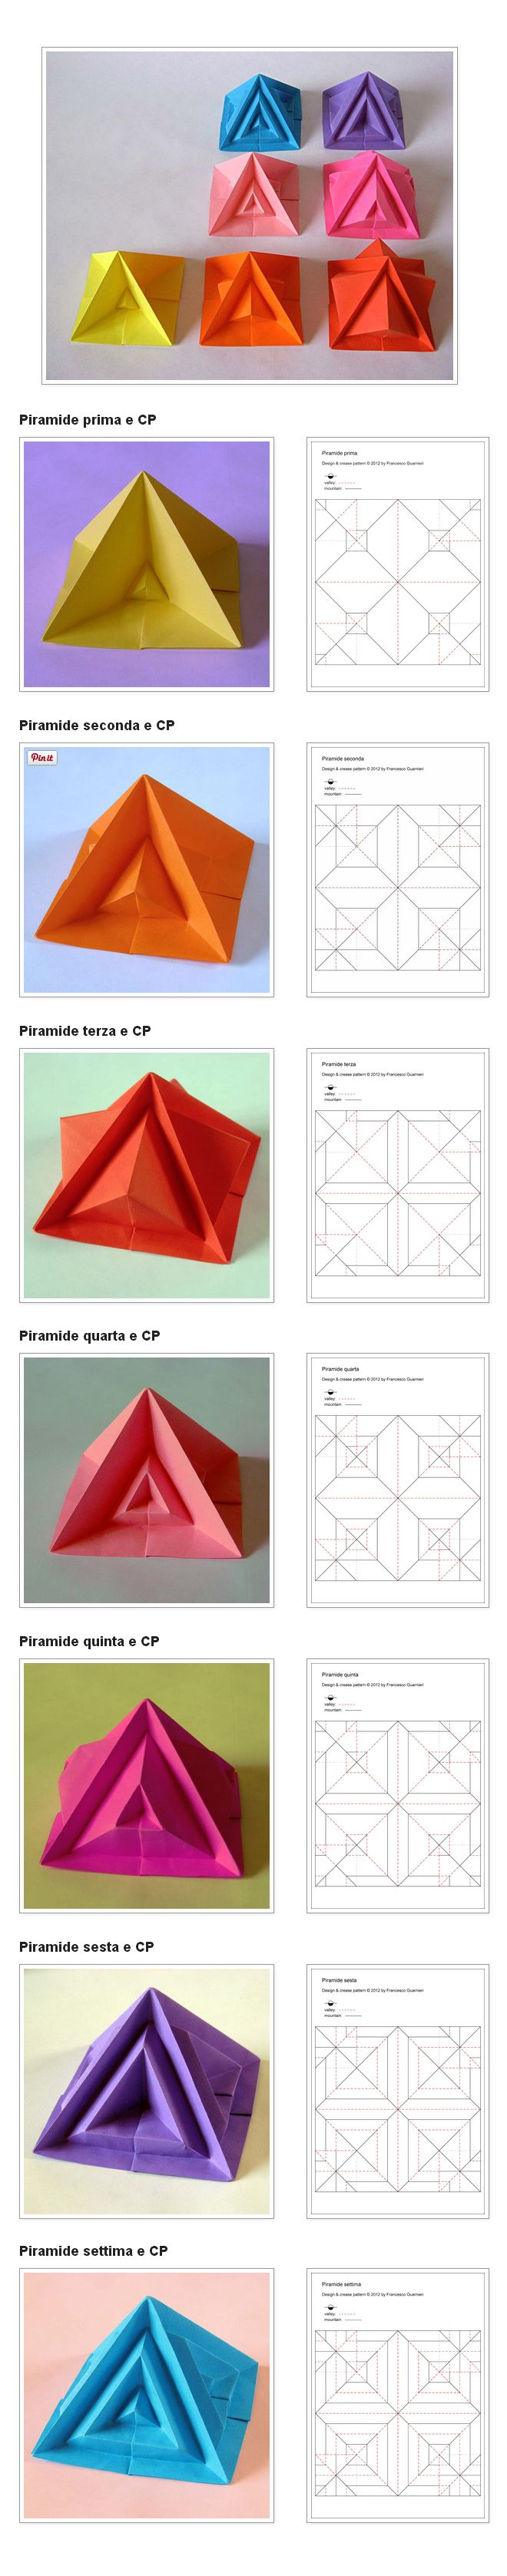 Origami: Piramide settima e varianti - Seventh pyramid and variants, by Francesco Guarnieri